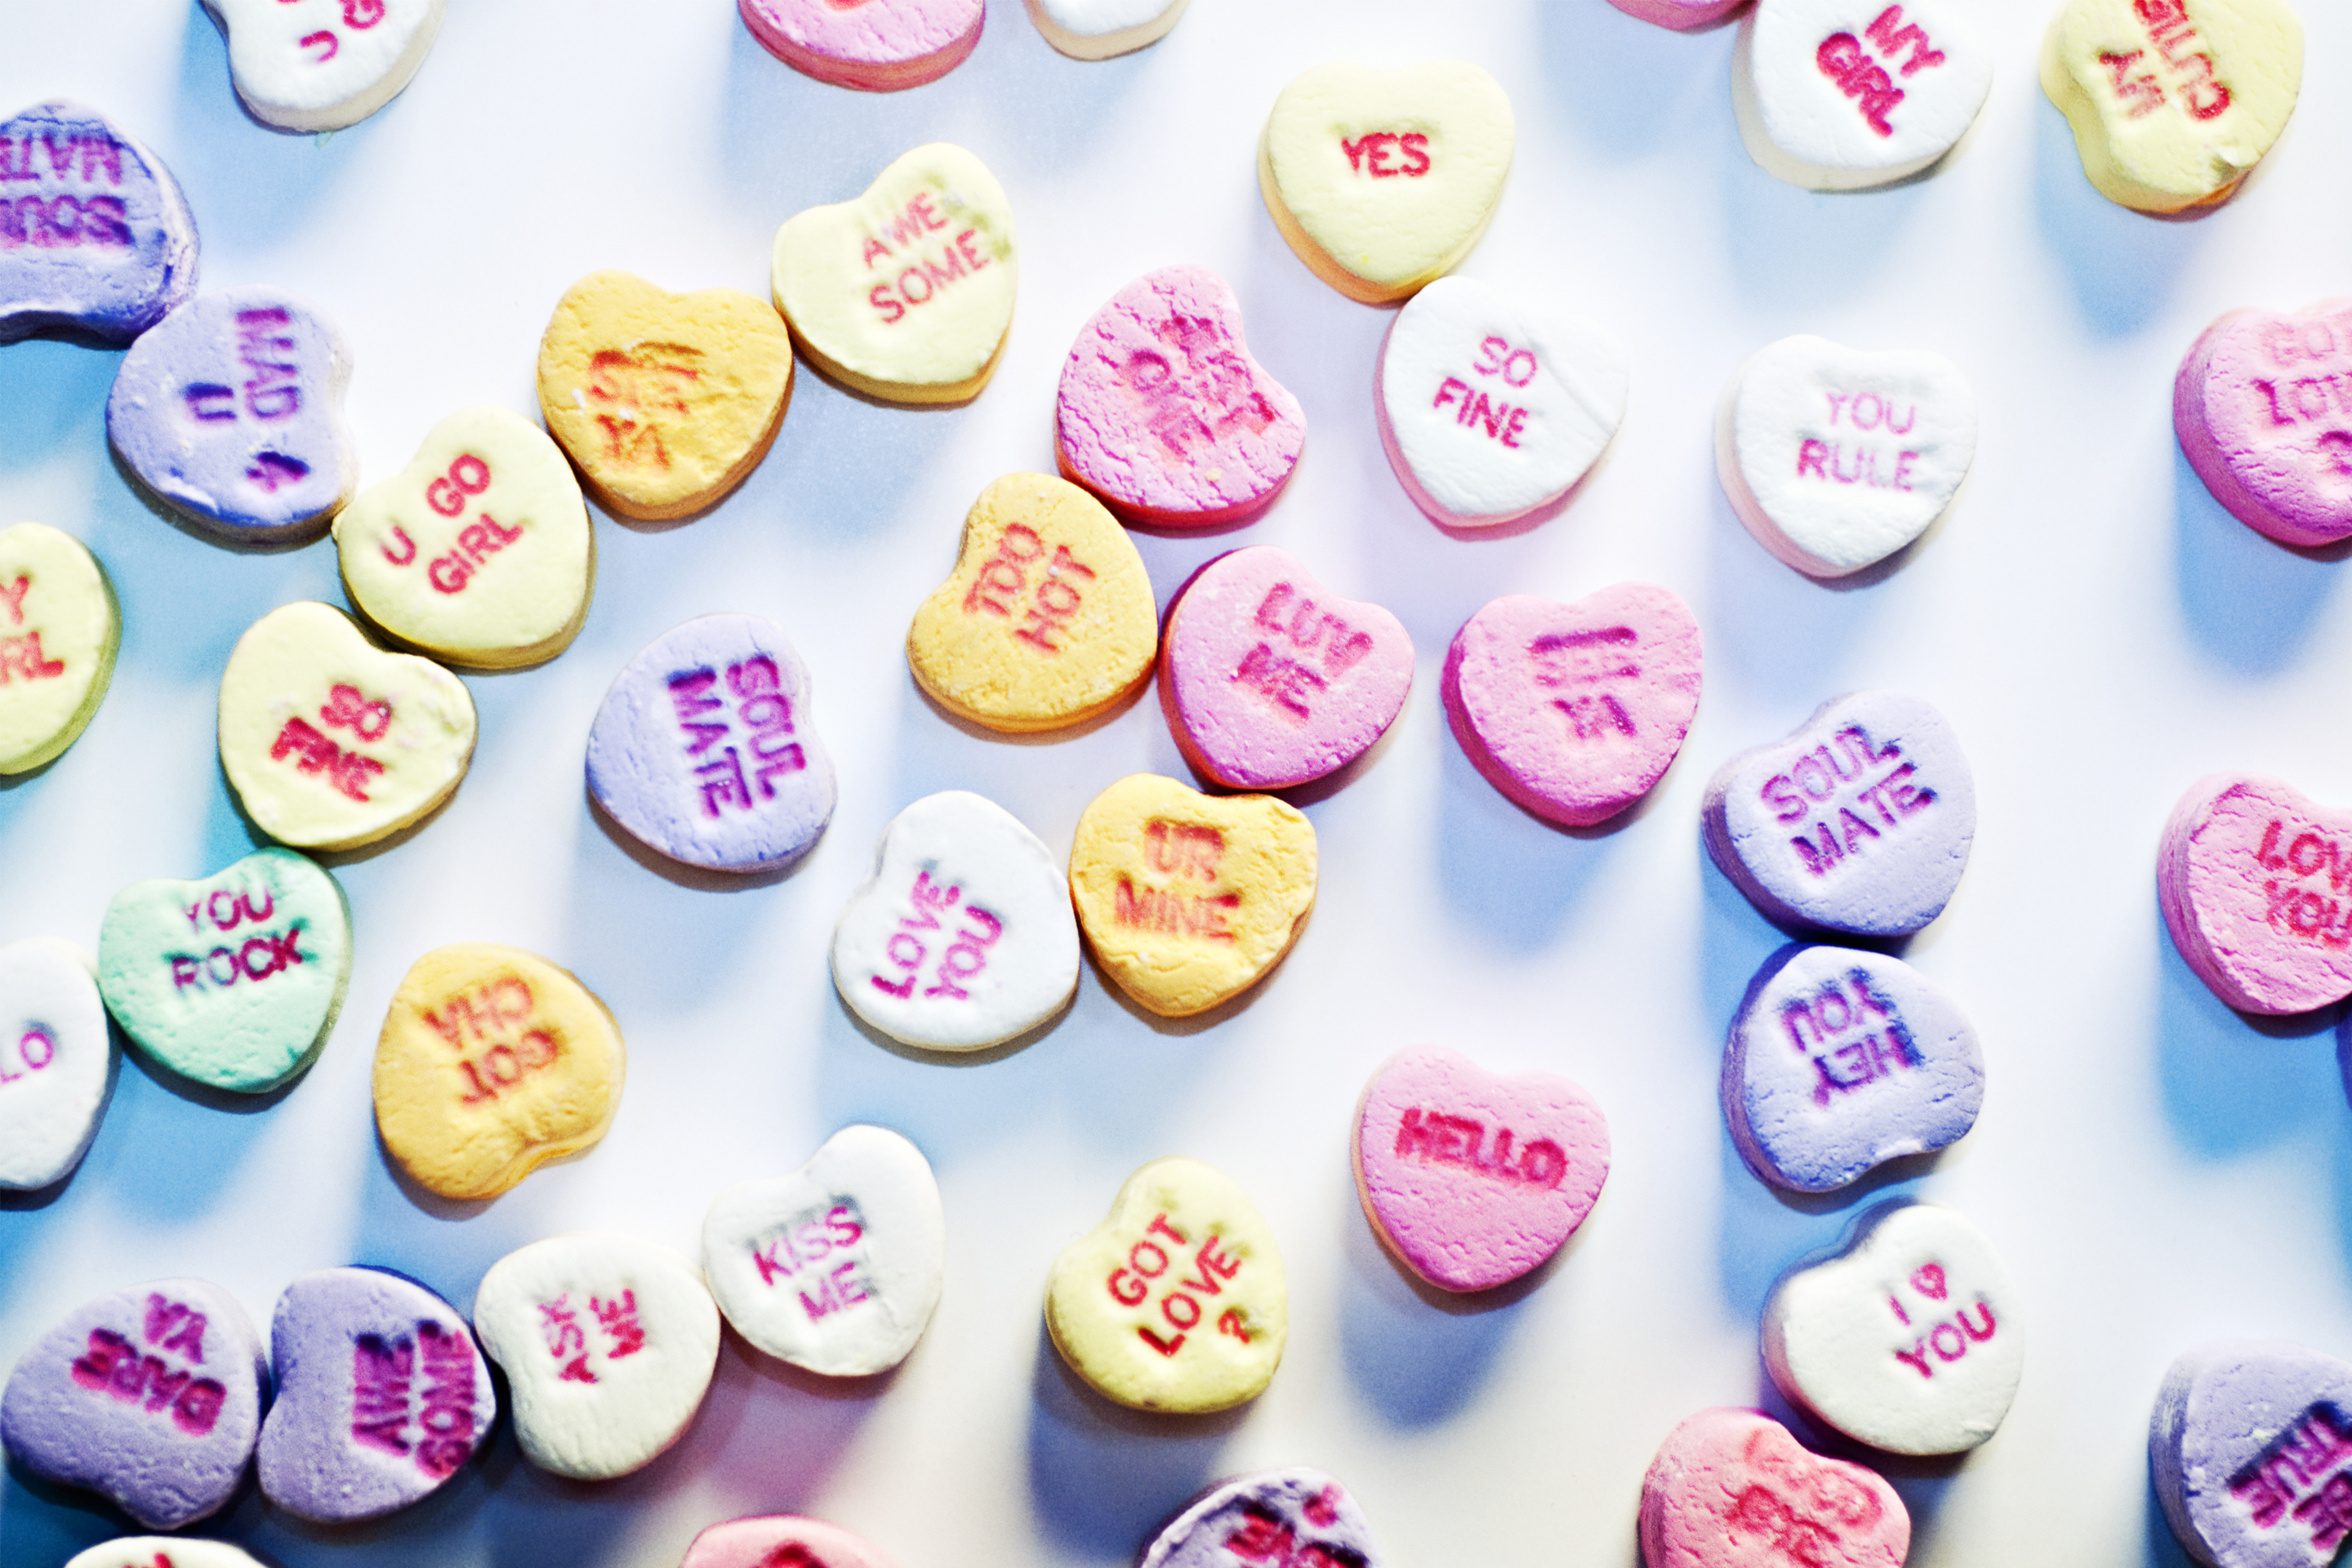 end-of-sweethearts-valentines-day-candy